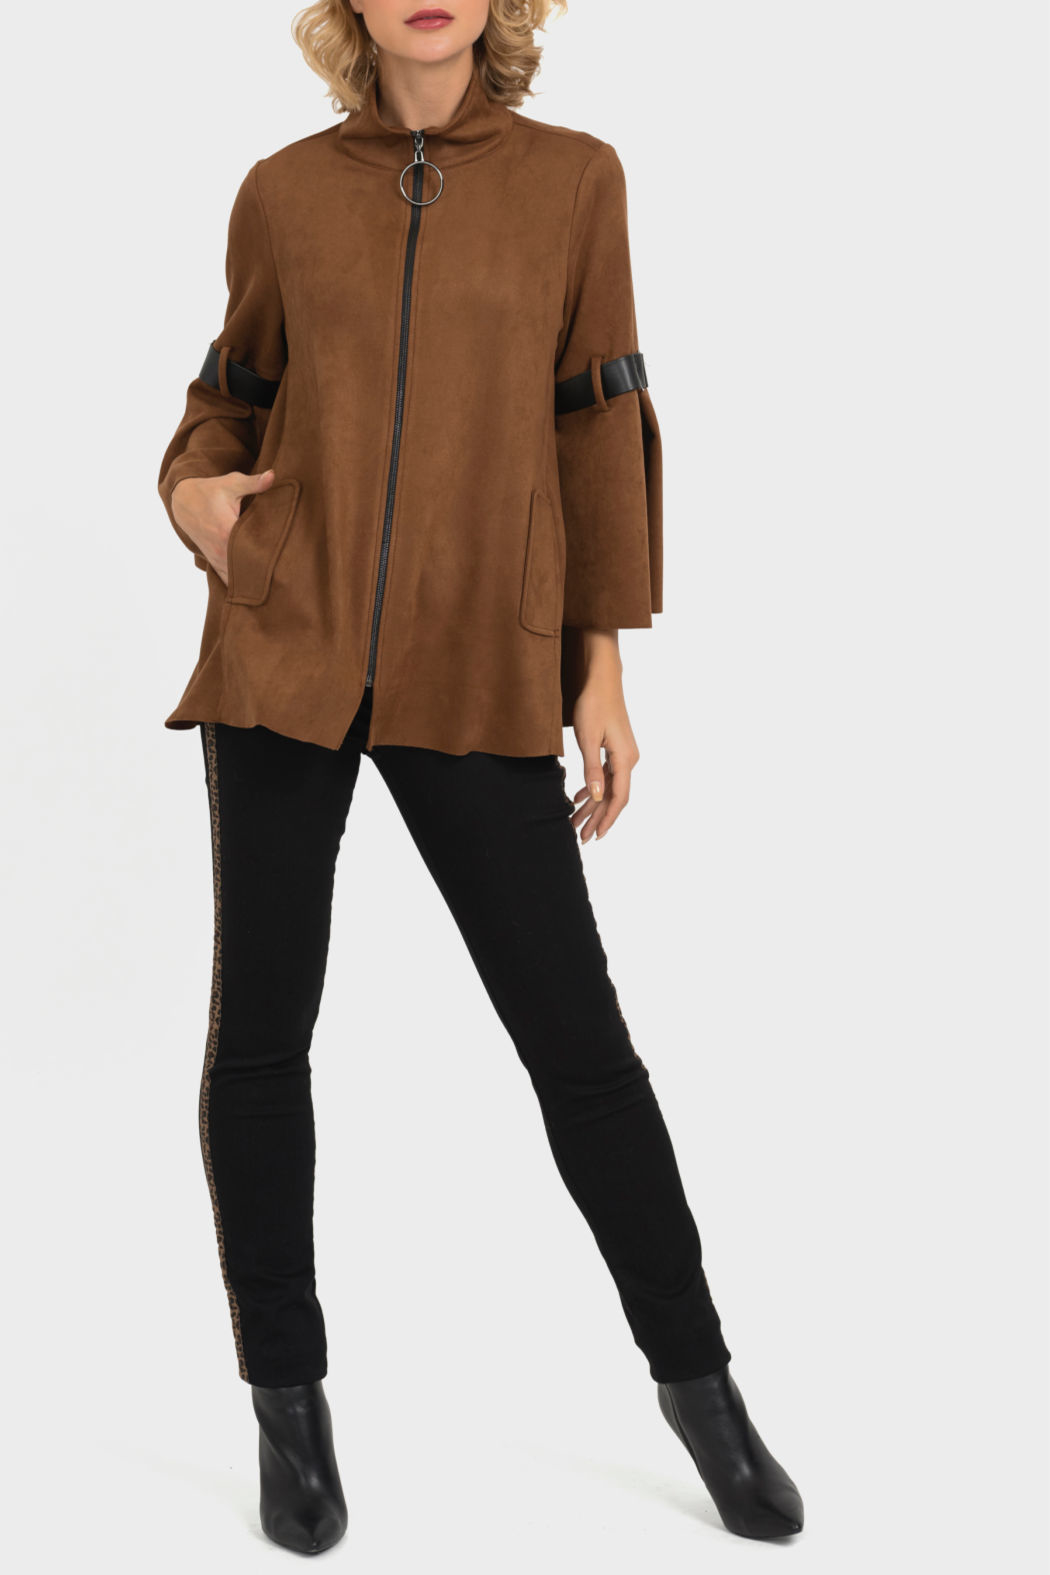 Joseph Ribkoff USA Inc. Suede Zipper Front Jacket - Front Cropped Image